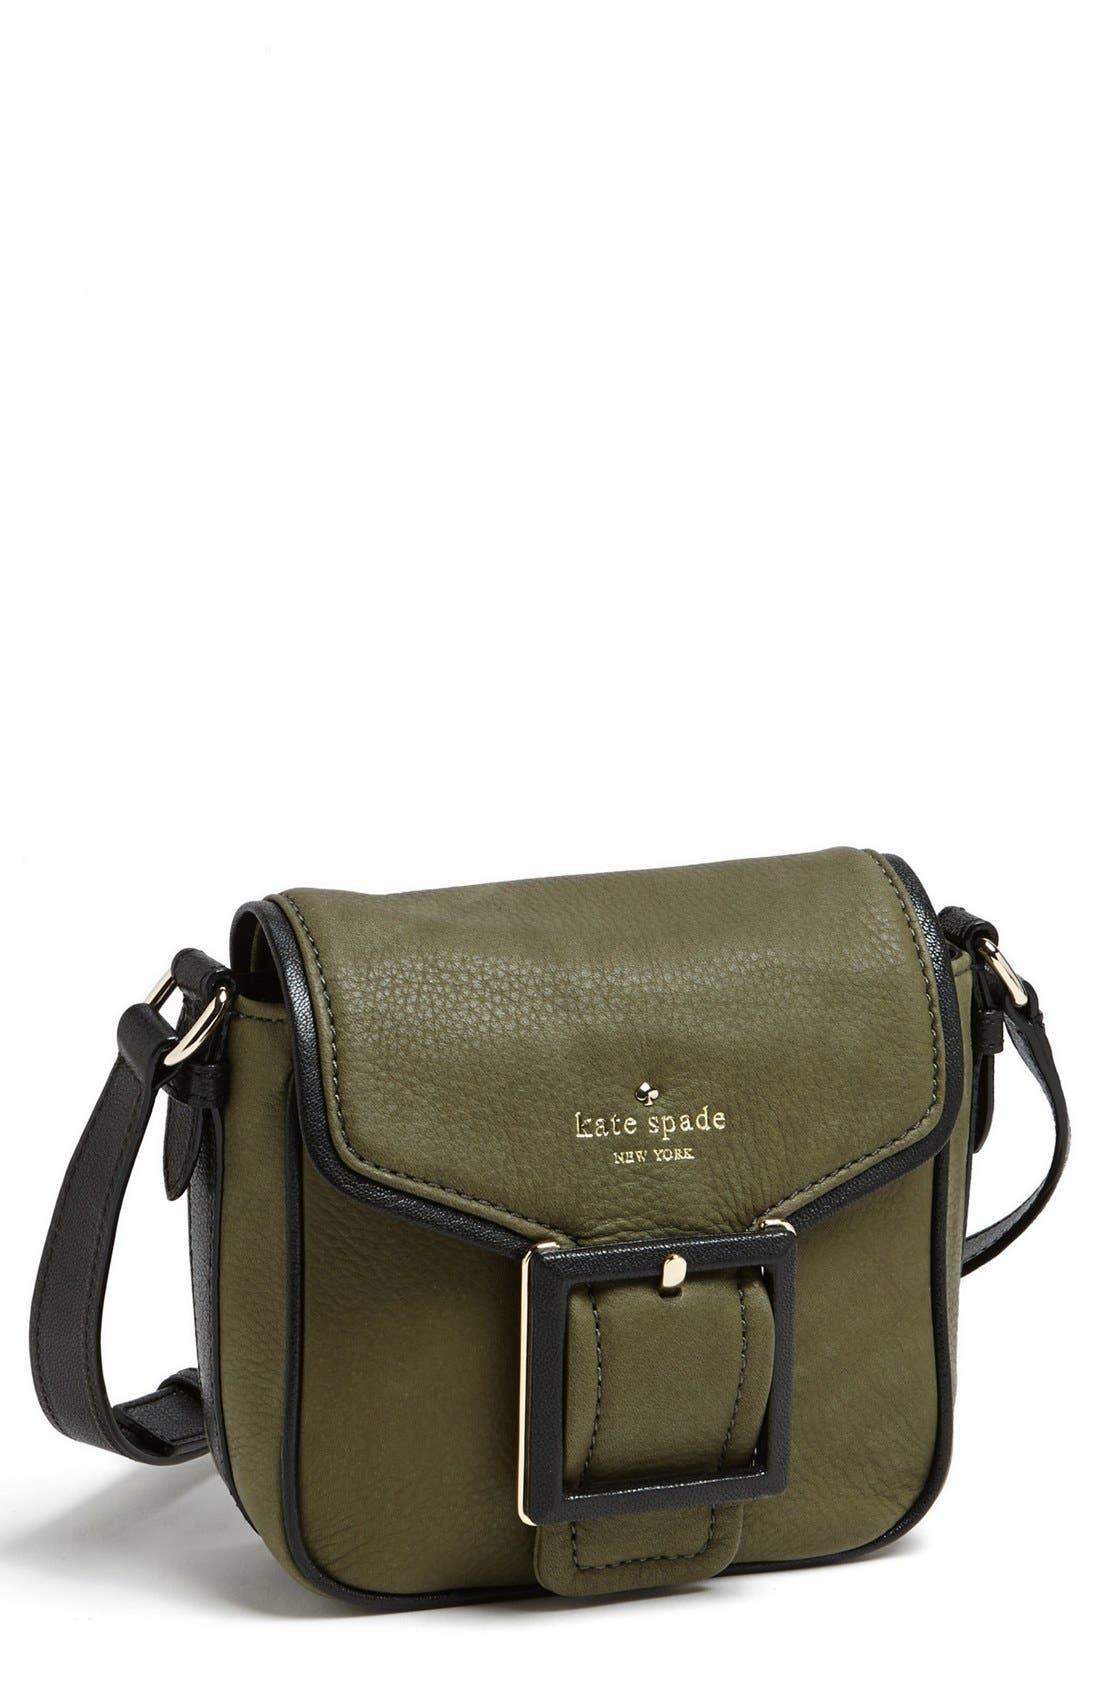 Main Image - kate spade new york 'abbey court - charon' crossbody bag